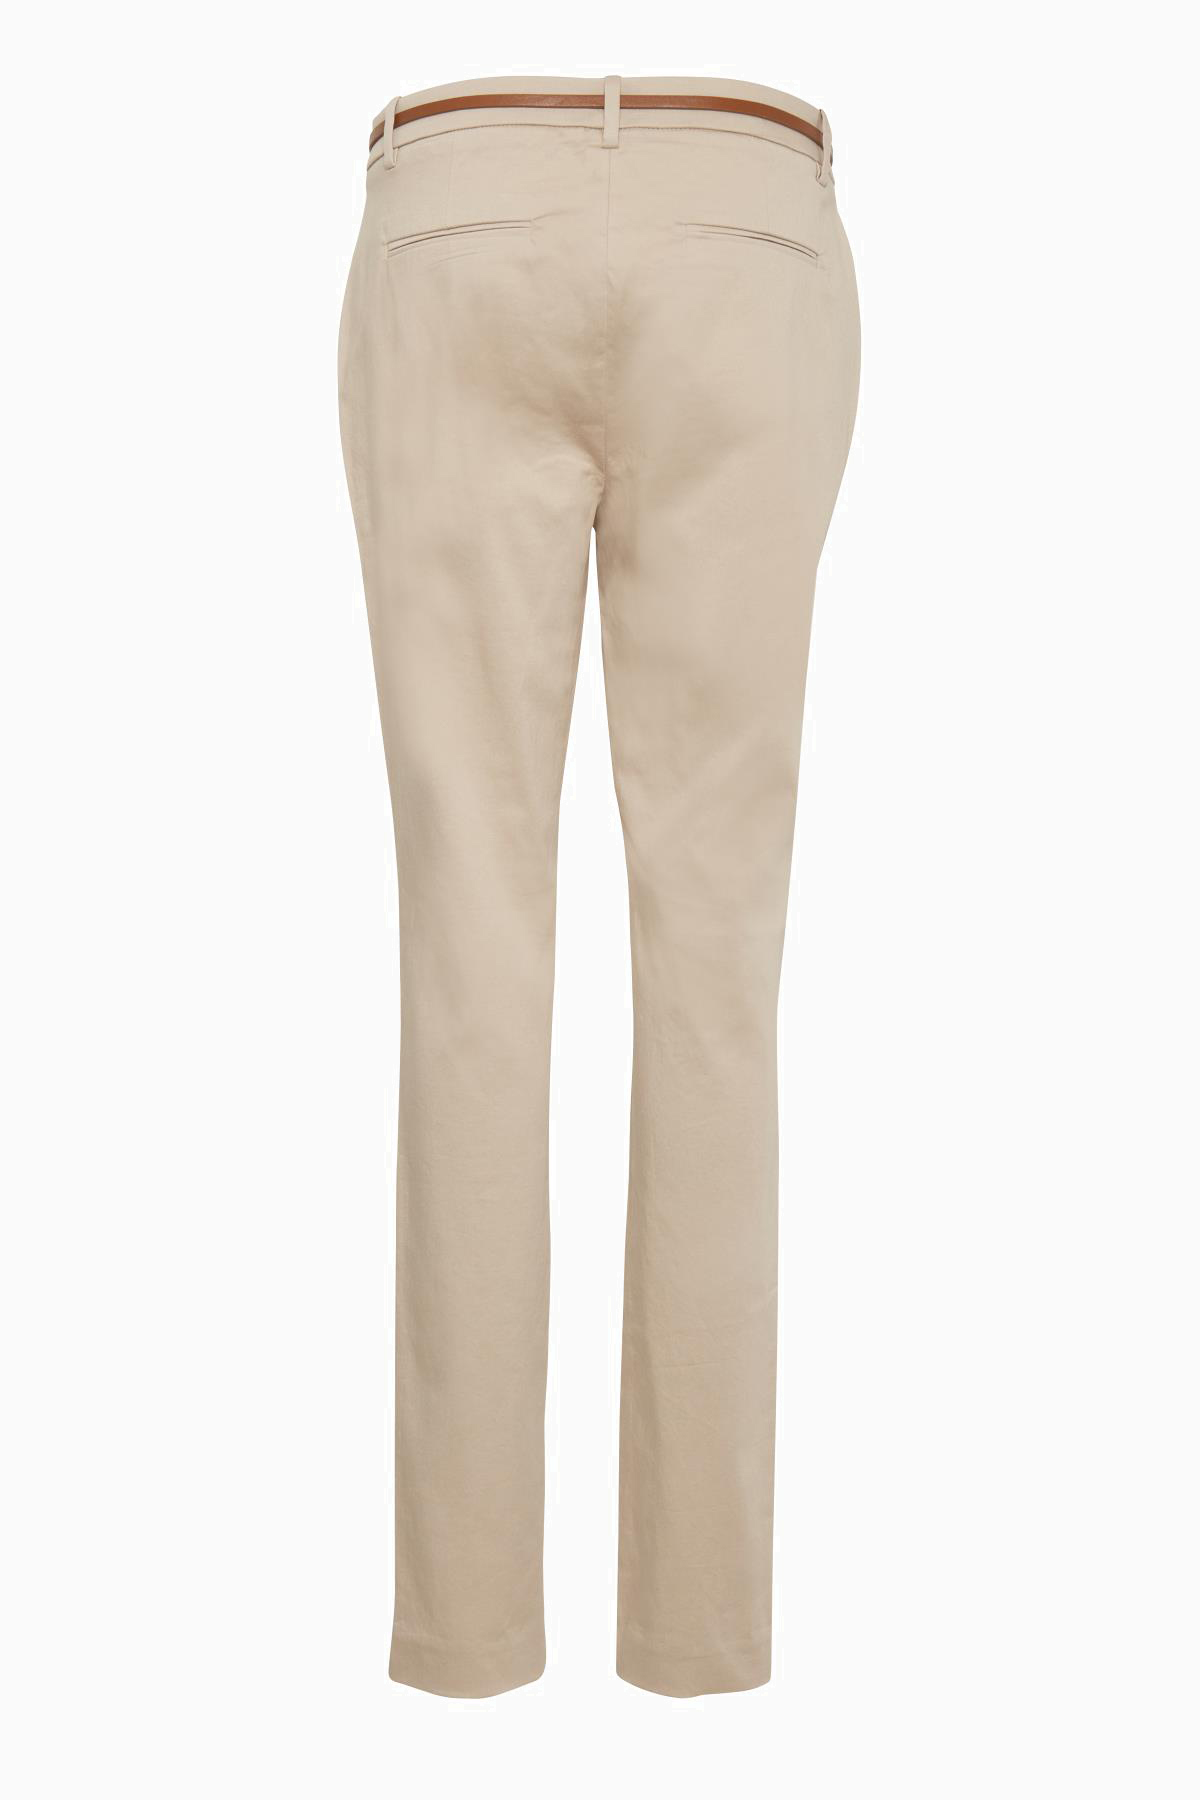 Oxford Tan Pants Suiting fra b.young – Køb Oxford Tan Pants Suiting fra str. 34-46 her